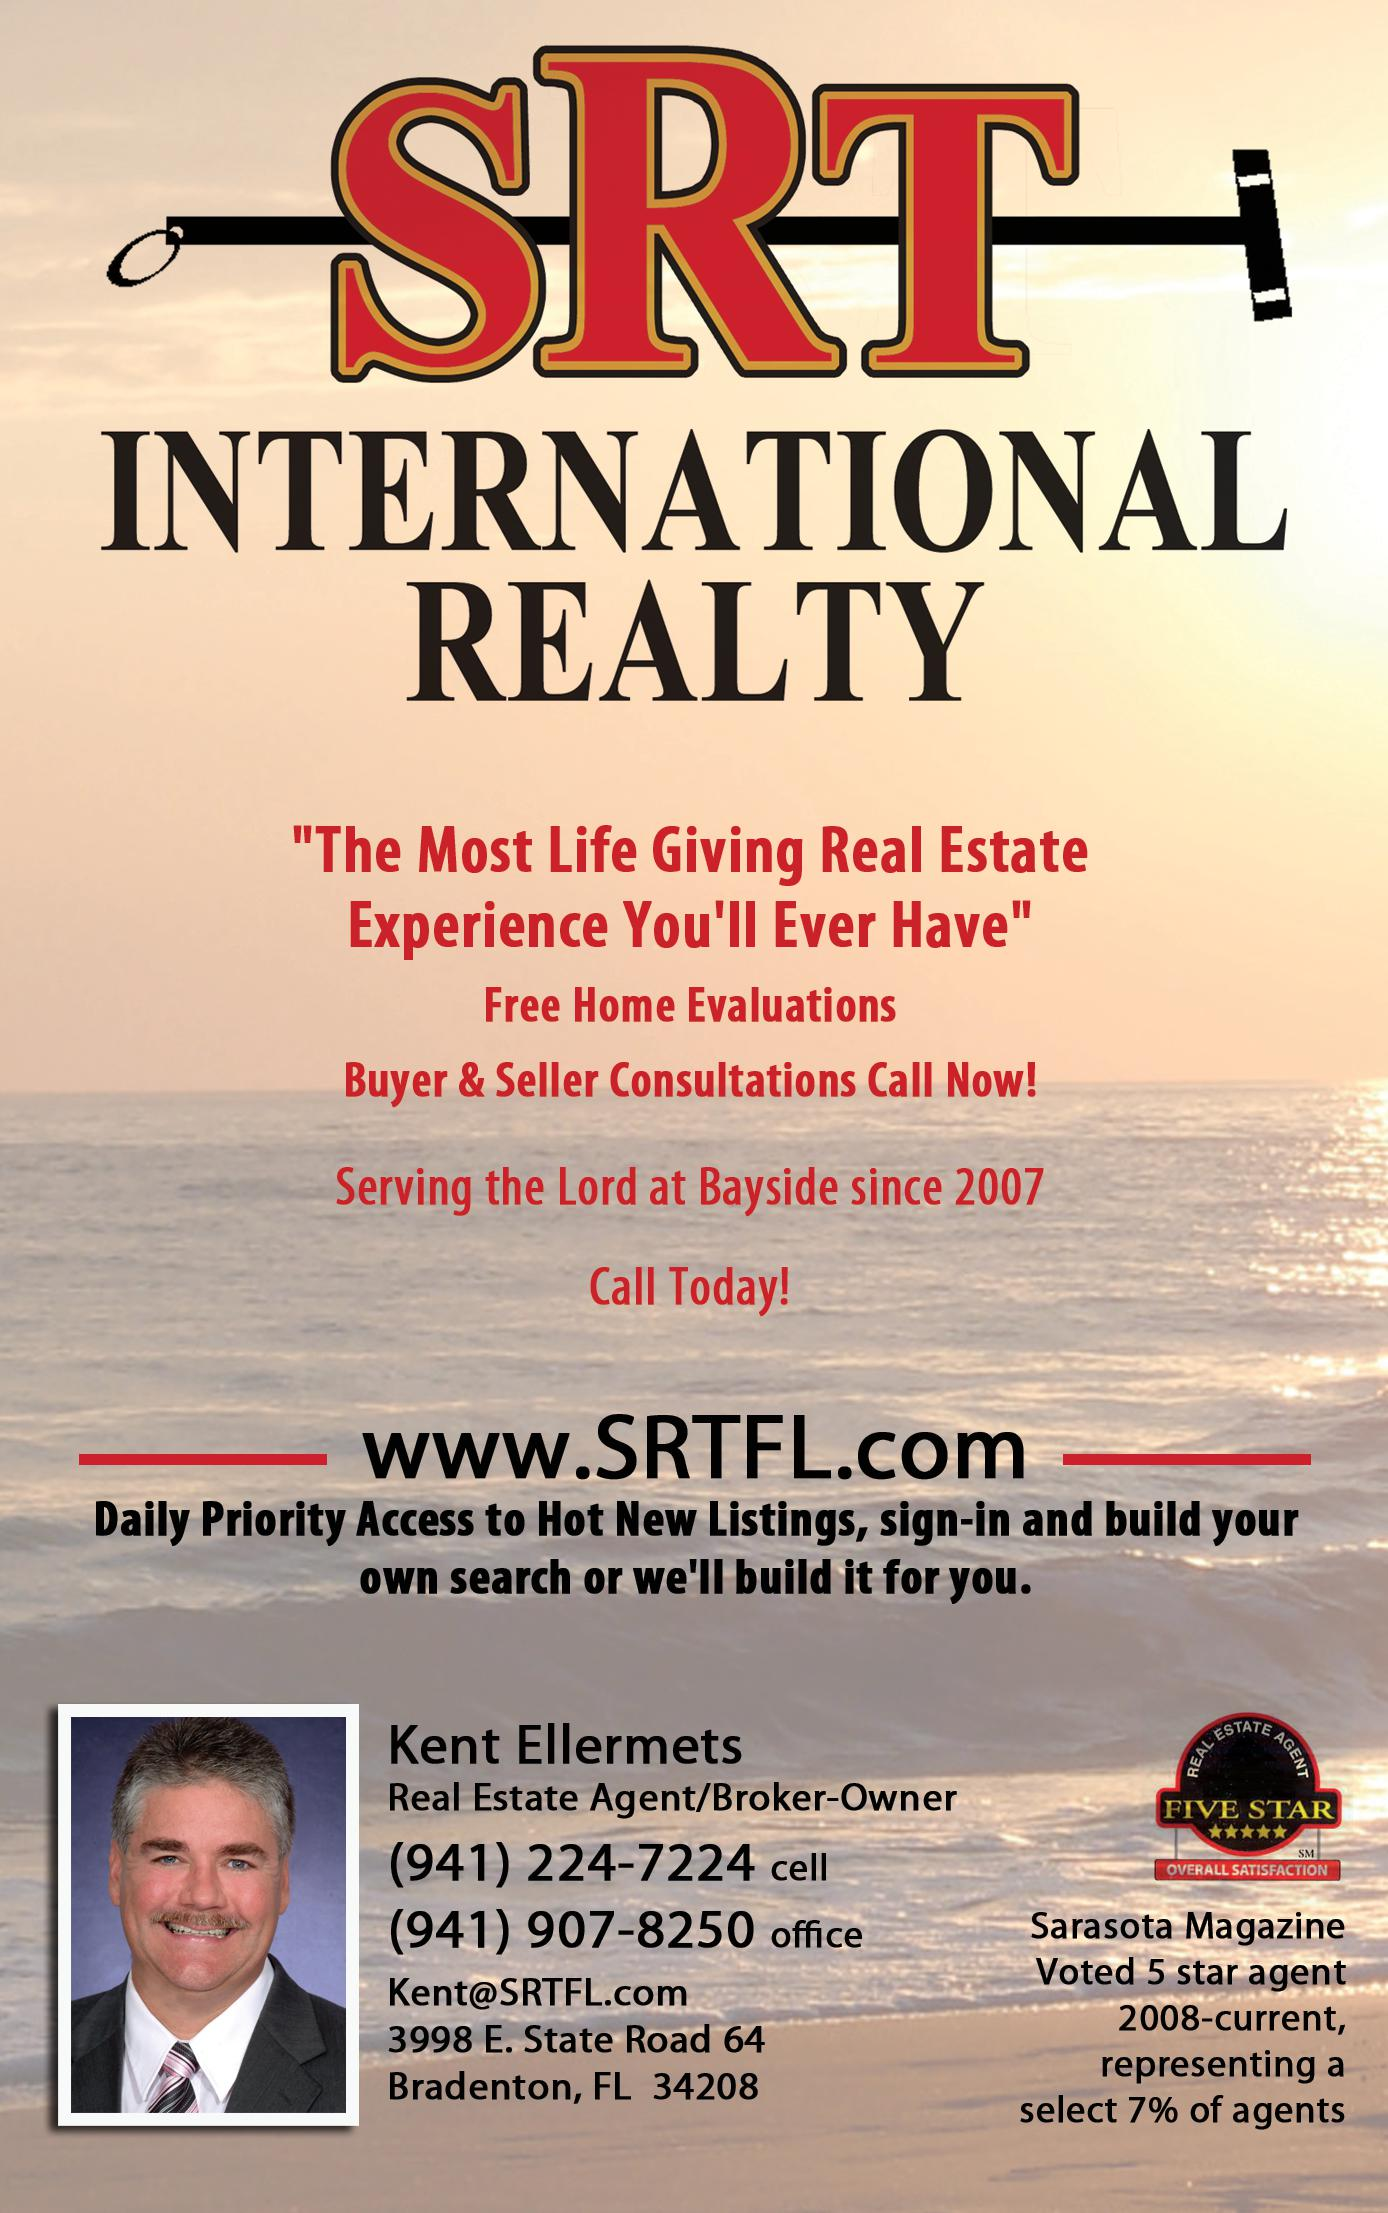 SRT International Realty Inc.